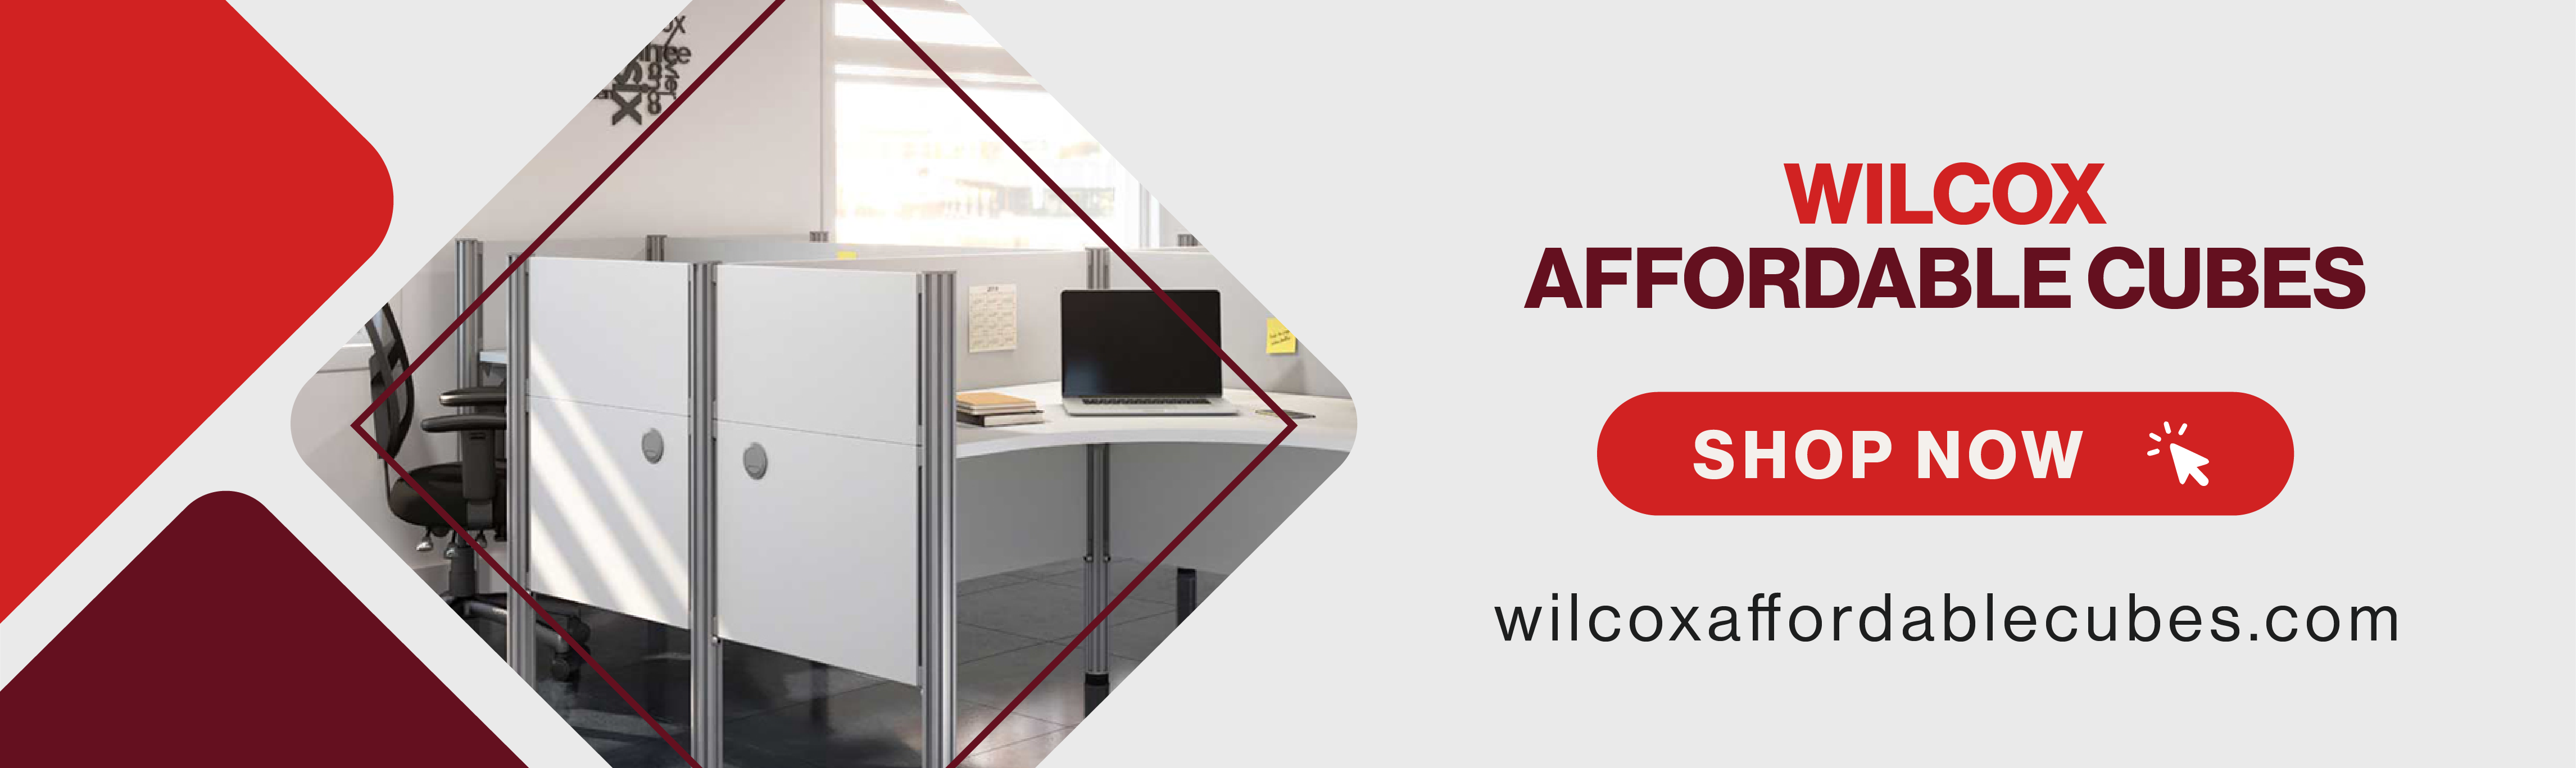 Wilcox Affordable Cubes Banner_Banner